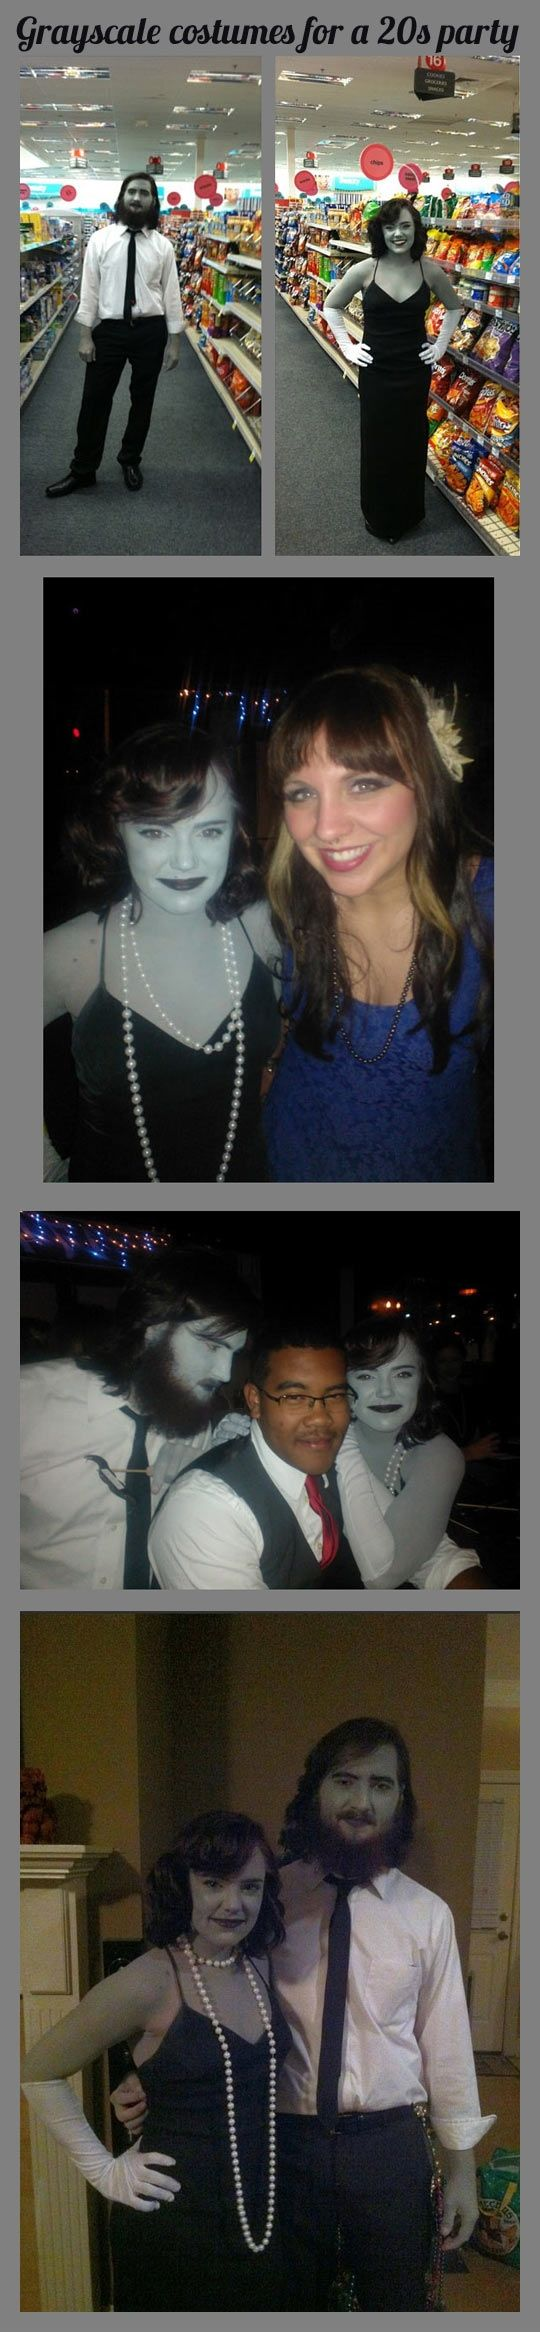 Grayscale costumes for a 20s party--This is awesome!